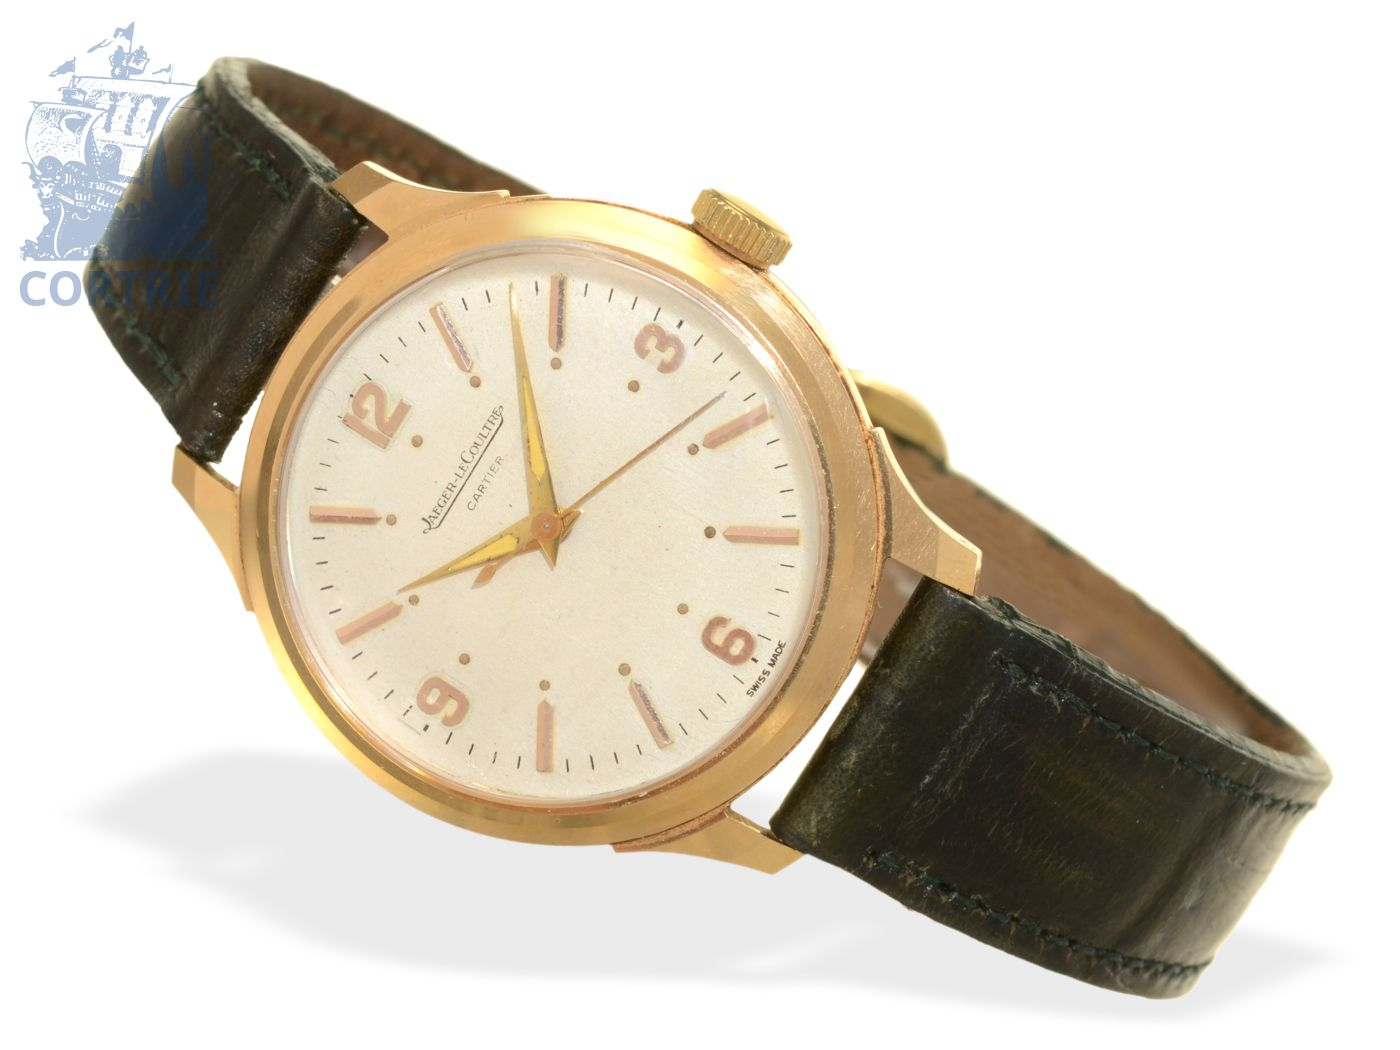 Wristwatch: extremely rare gentlemen's watch with center seconds, Jaeger Le Coultre/Cartier caliber P478 C, ca. 1950-